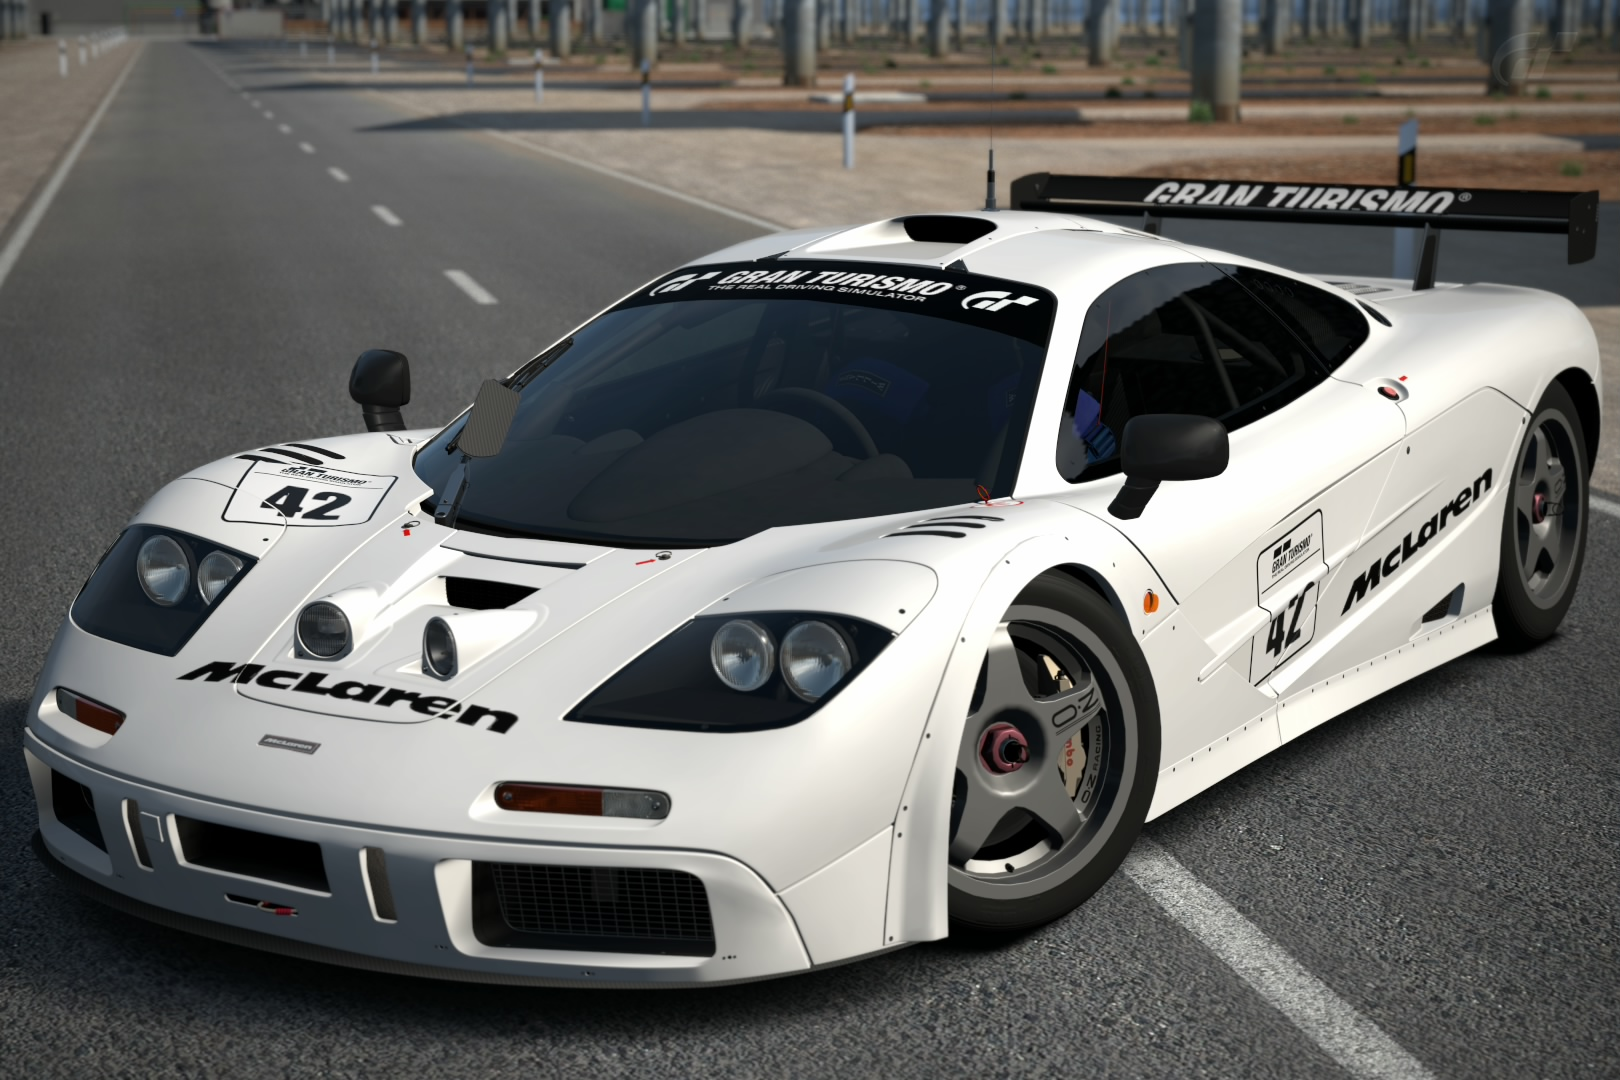 McLaren F1 GTR Race Car Base Model '95 | Gran Turismo Wiki | FANDOM ...